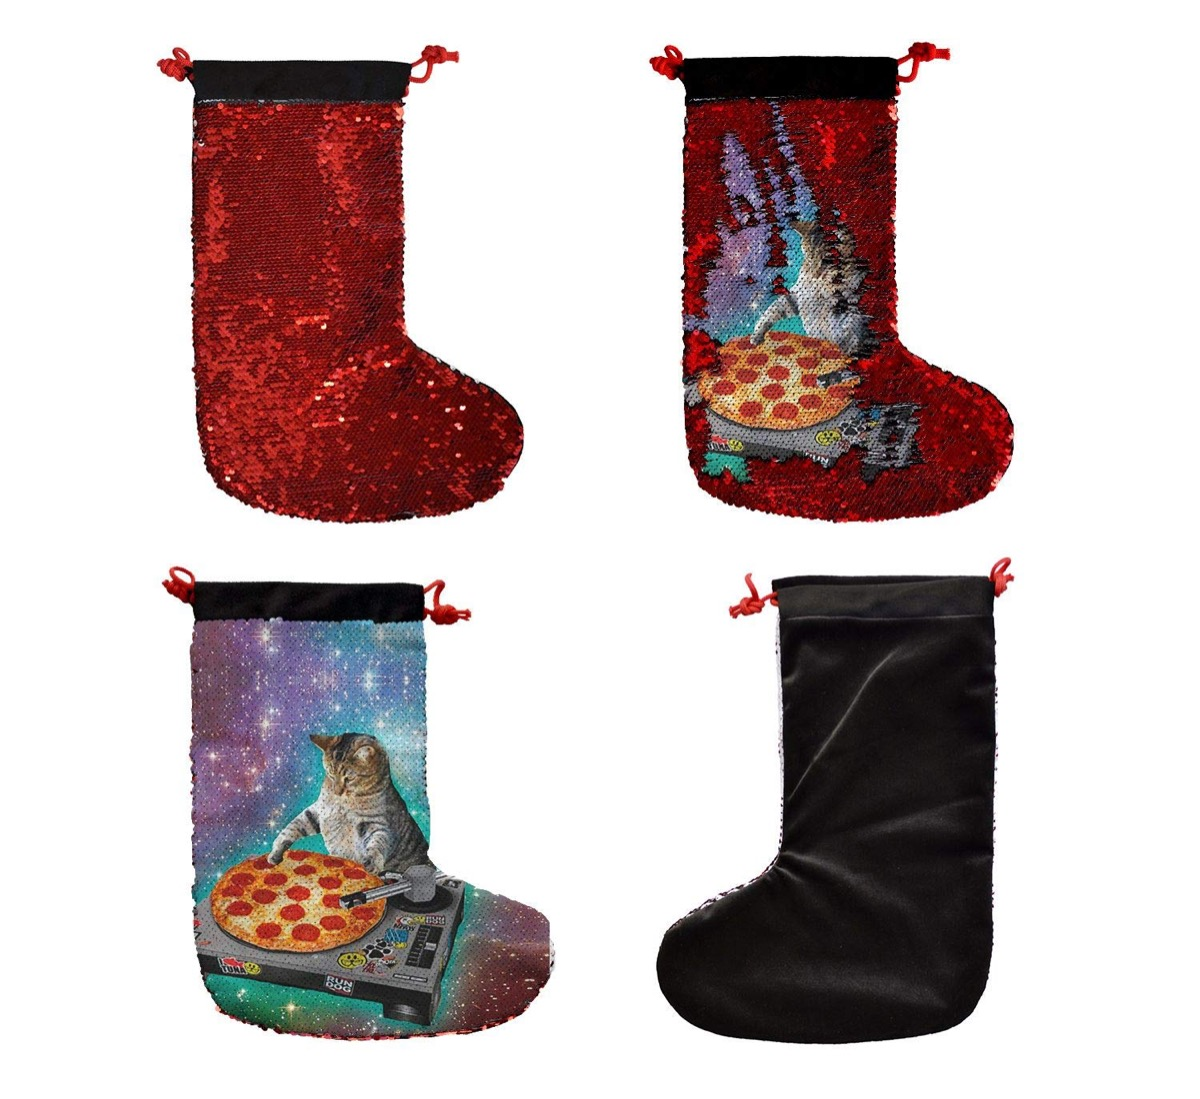 four stockings with pizza cat on them